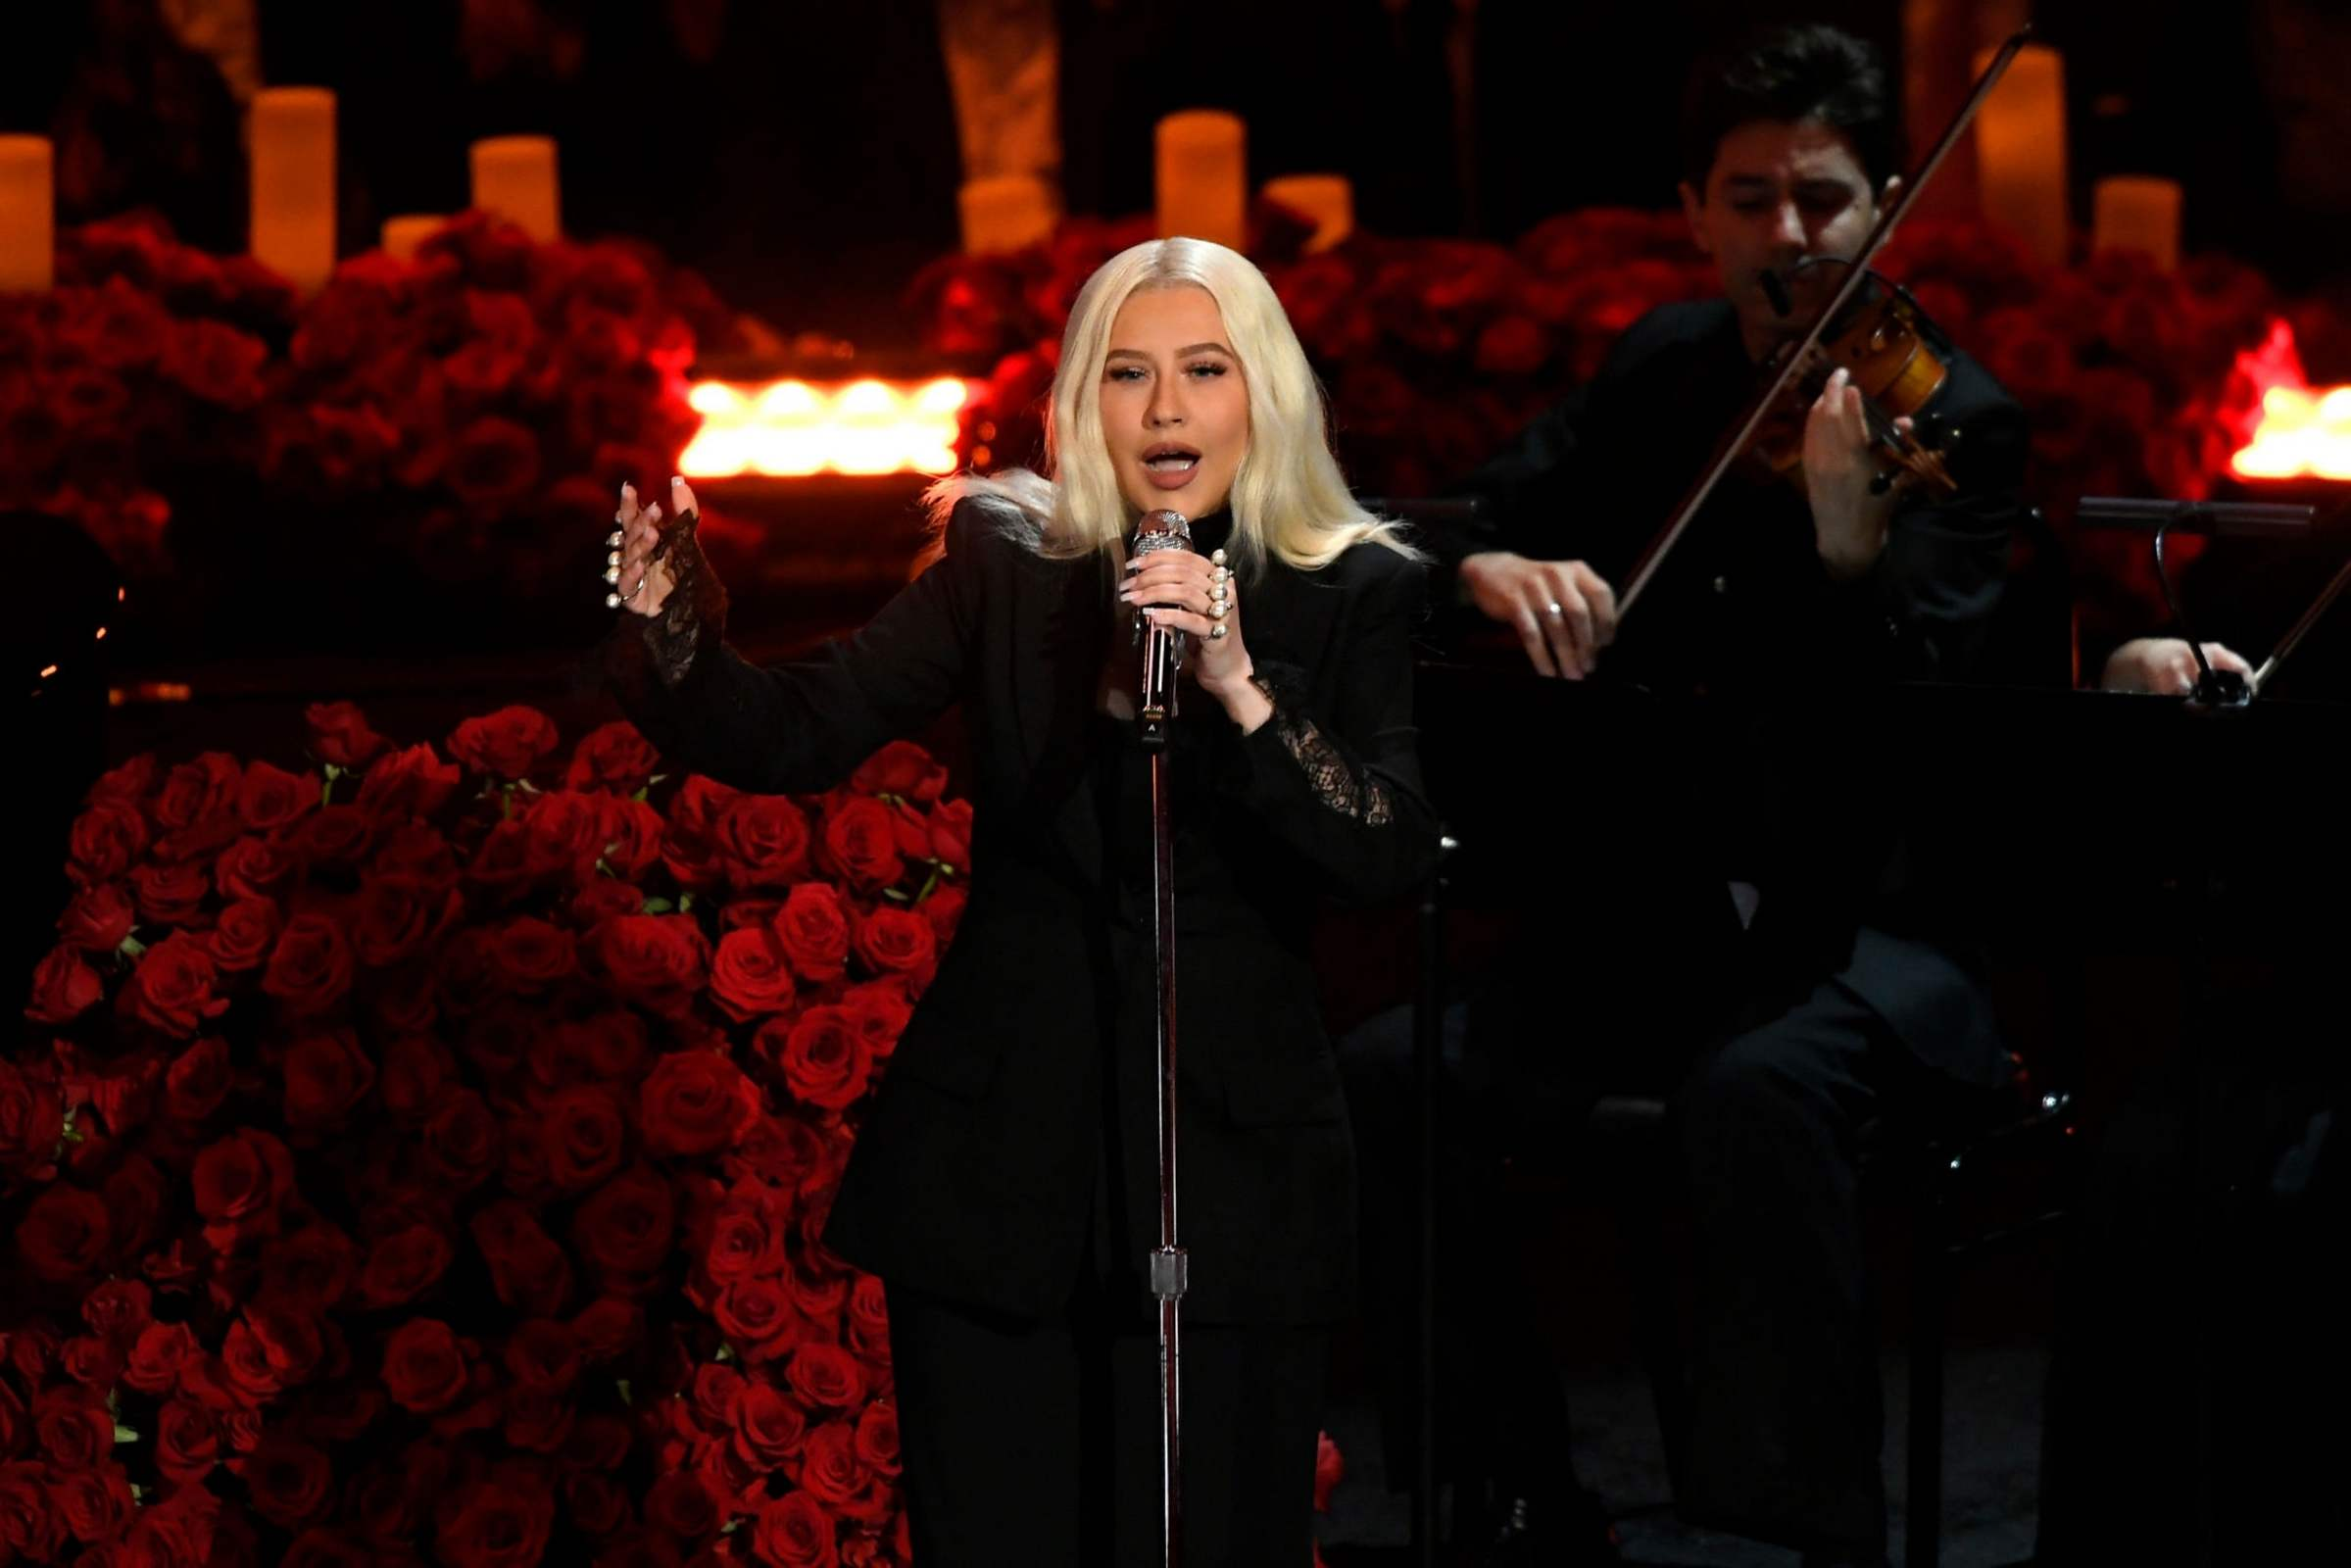 Christina_Aguilera_Performs_at_A_Celebration_of_Life_for_Kobe_and_Gianna_Bryant_-_February_24-07.jpg